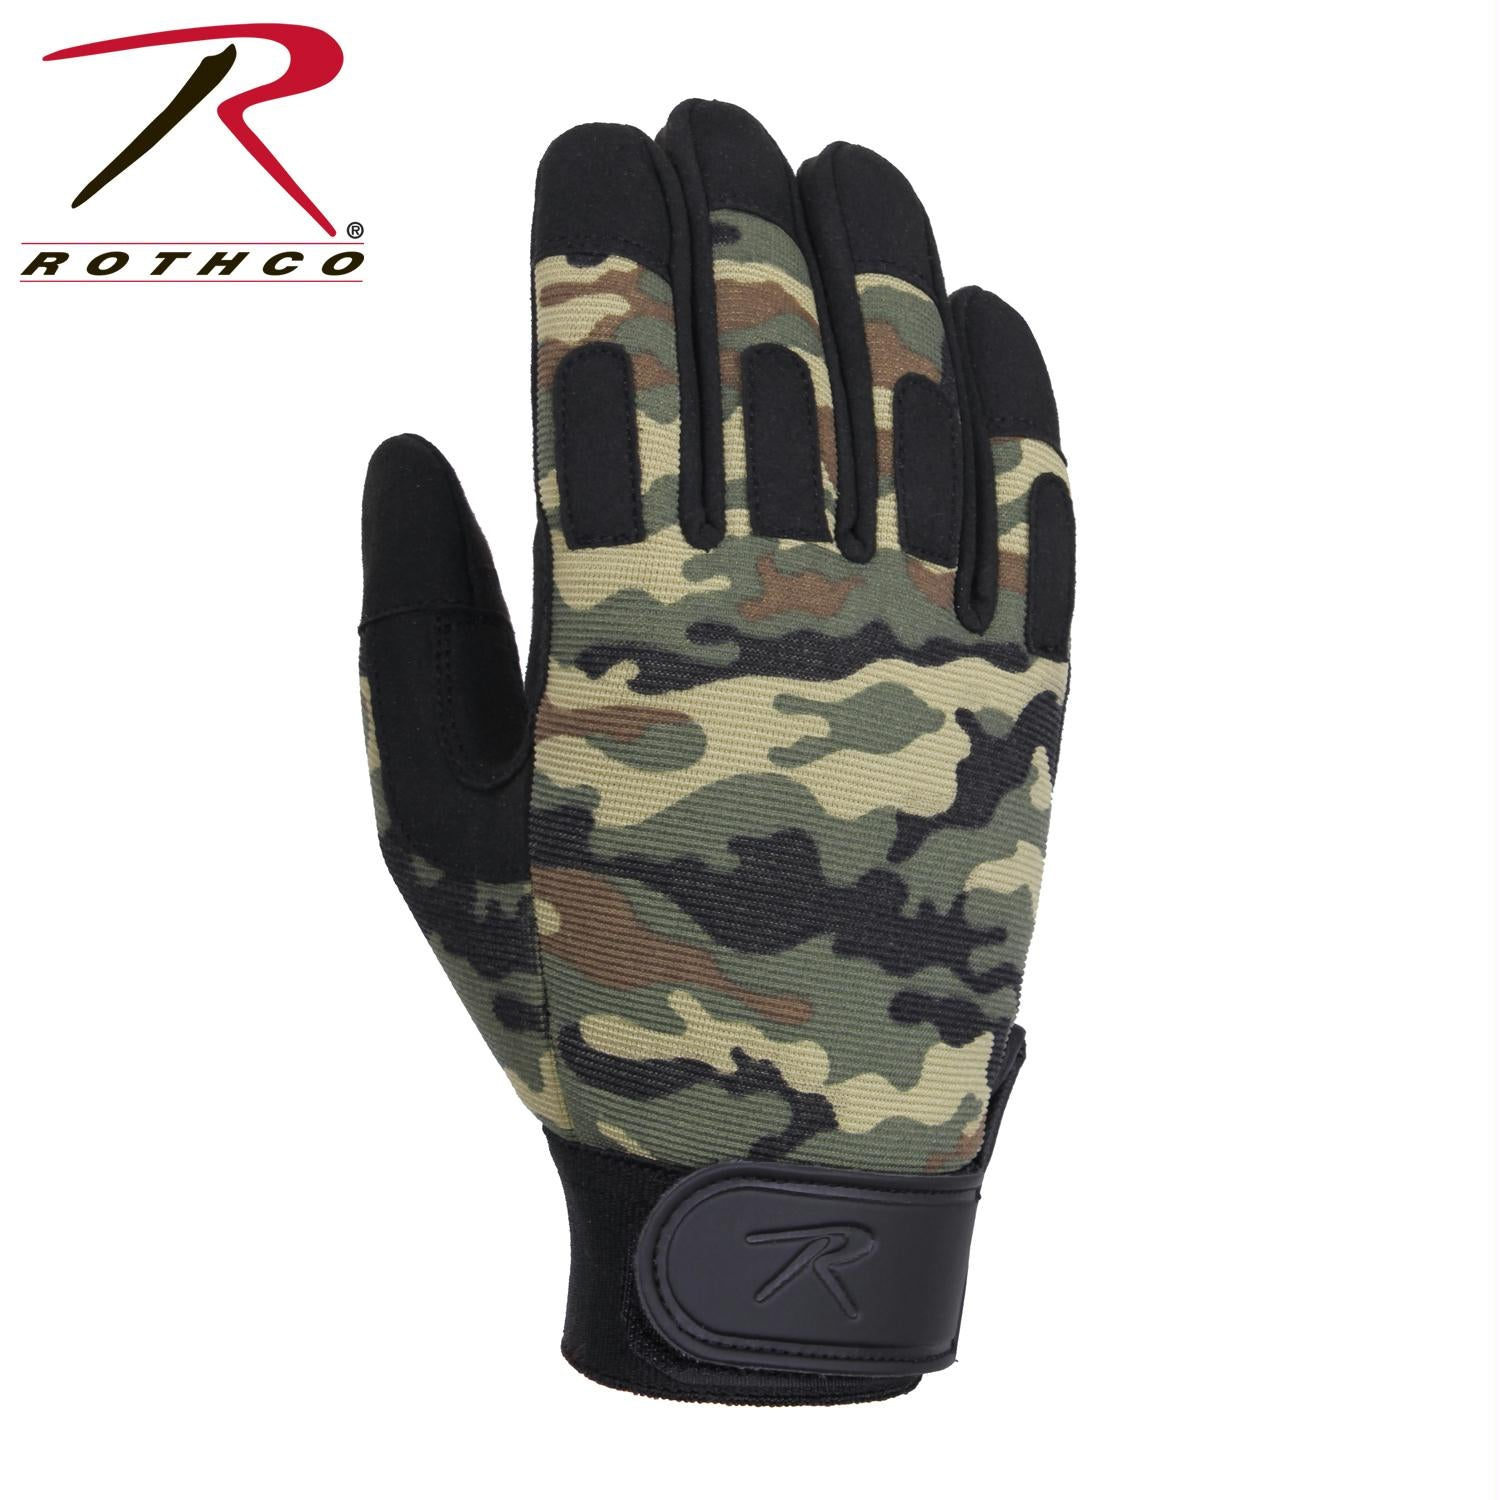 Rothco Lightweight All Purpose Duty Gloves - Woodland Camo / L